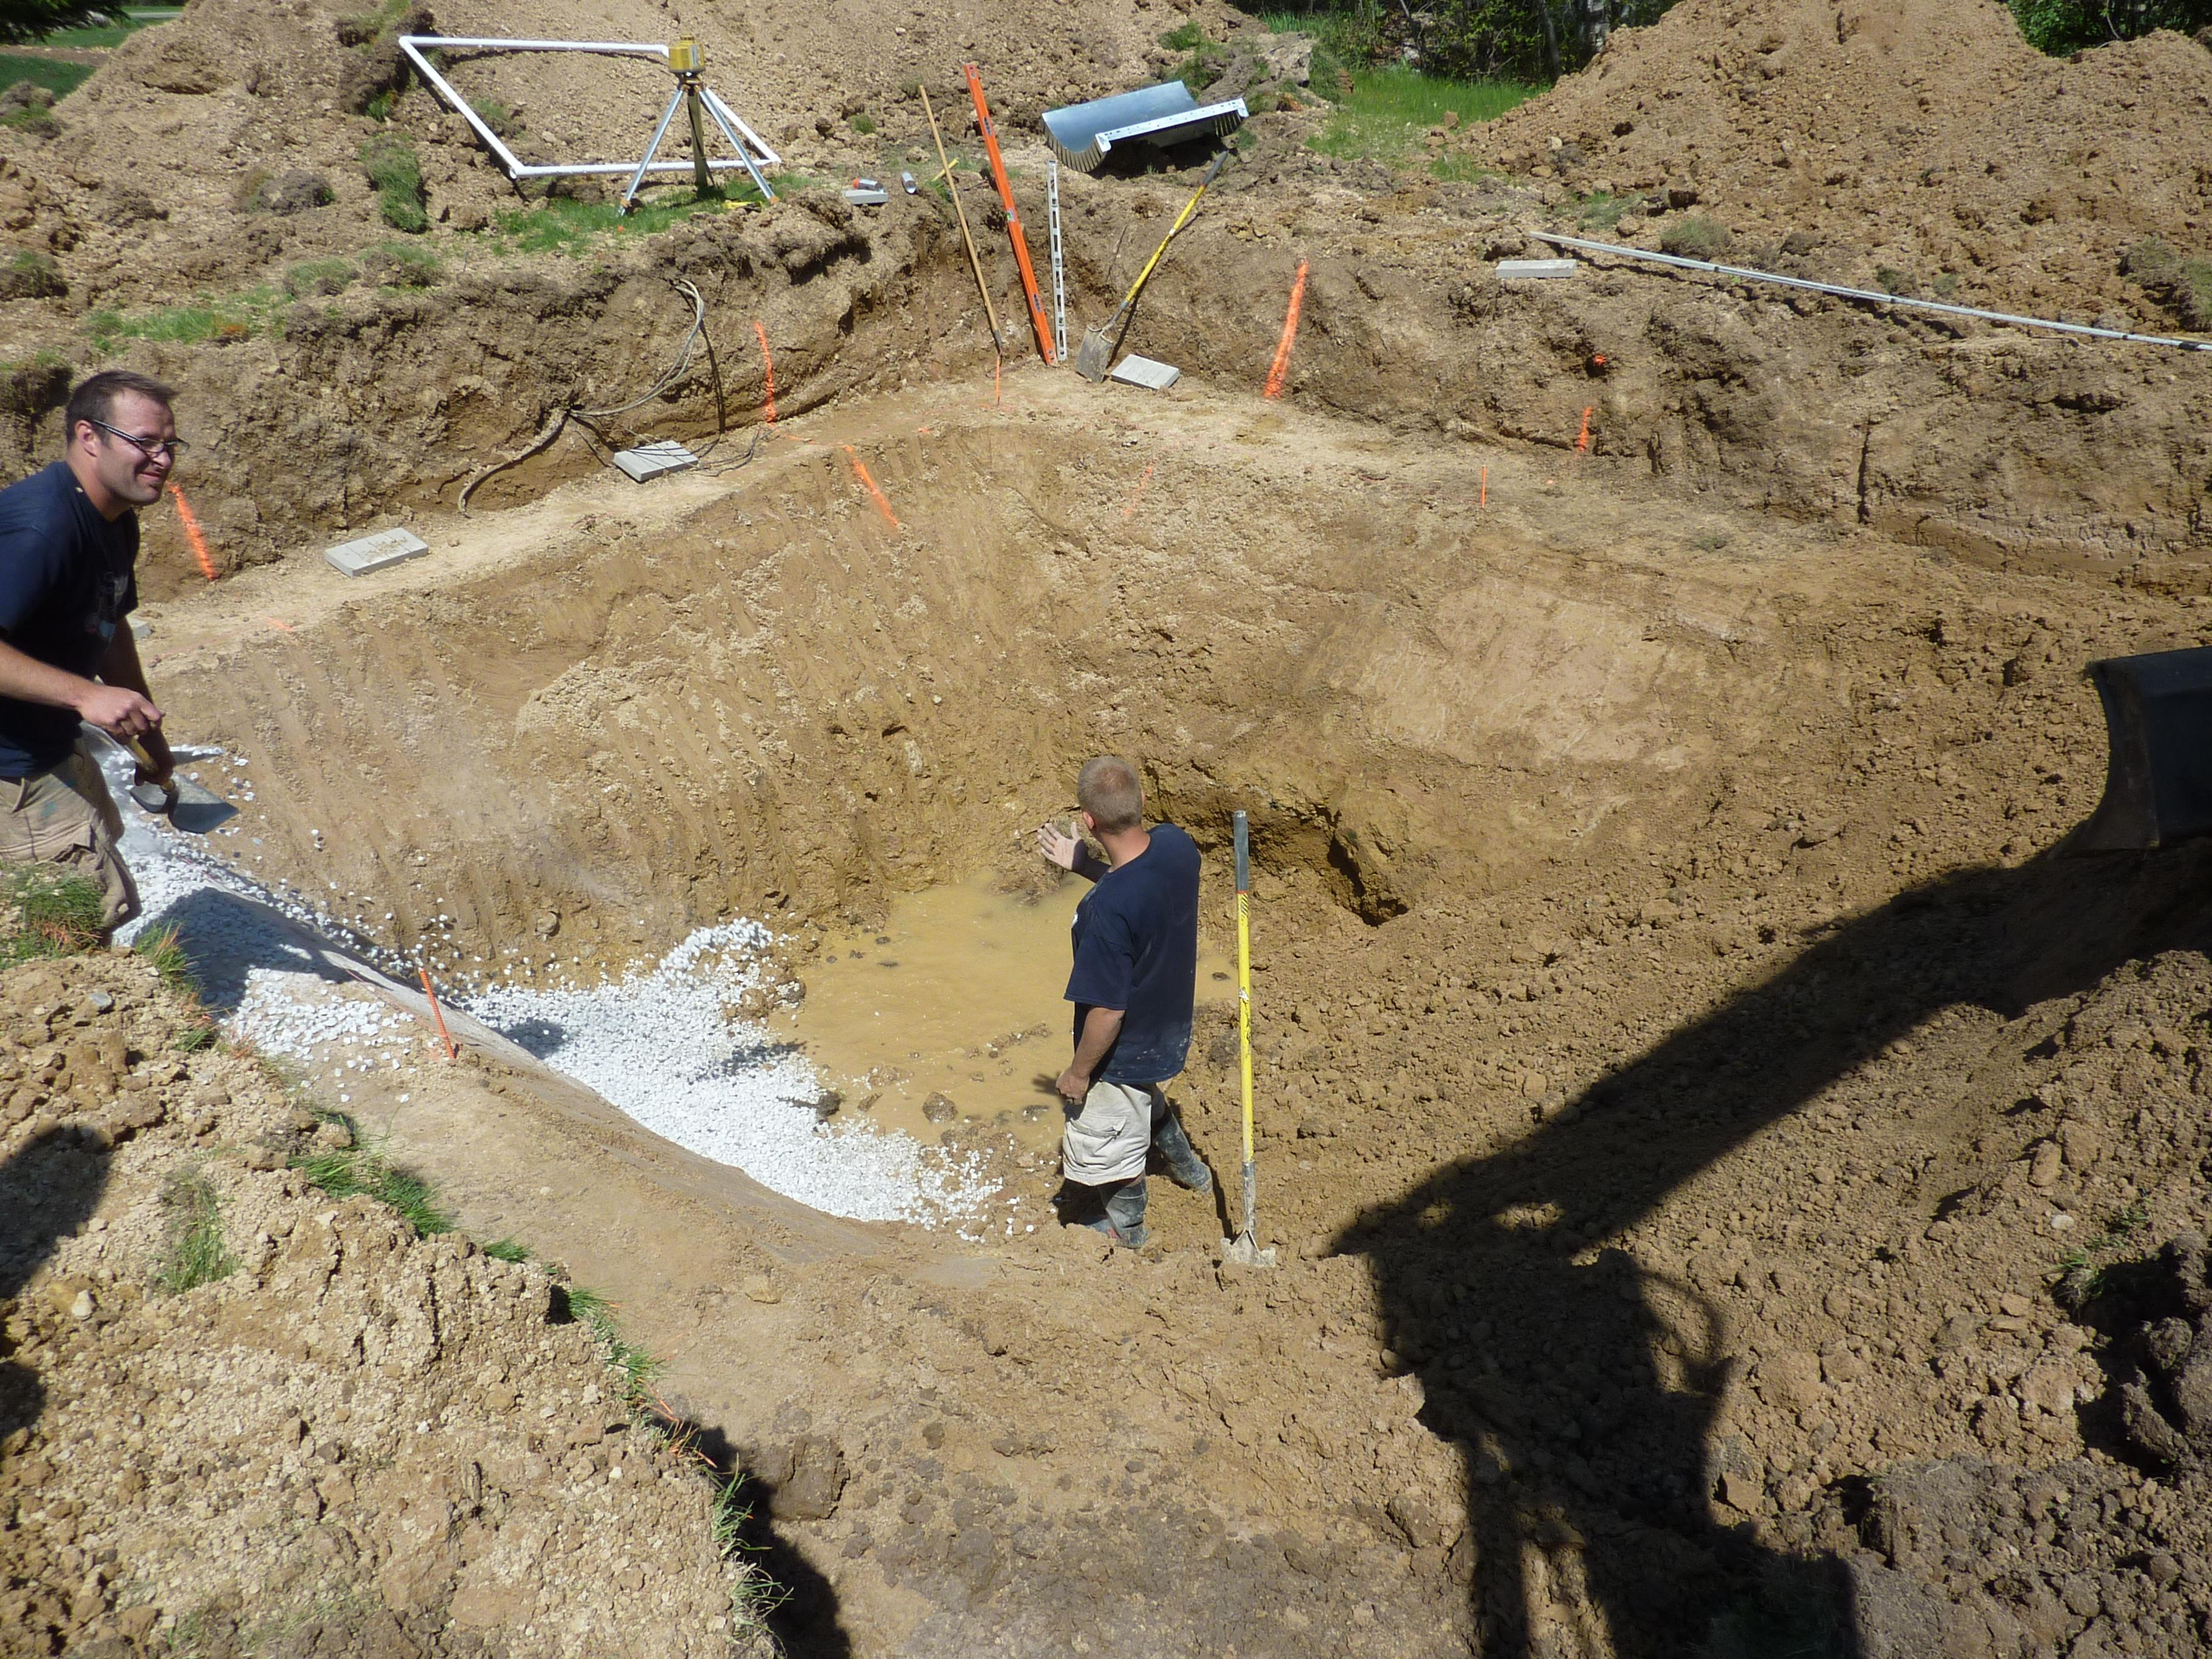 Penguin Pools over-digs the Sump for swimming pools